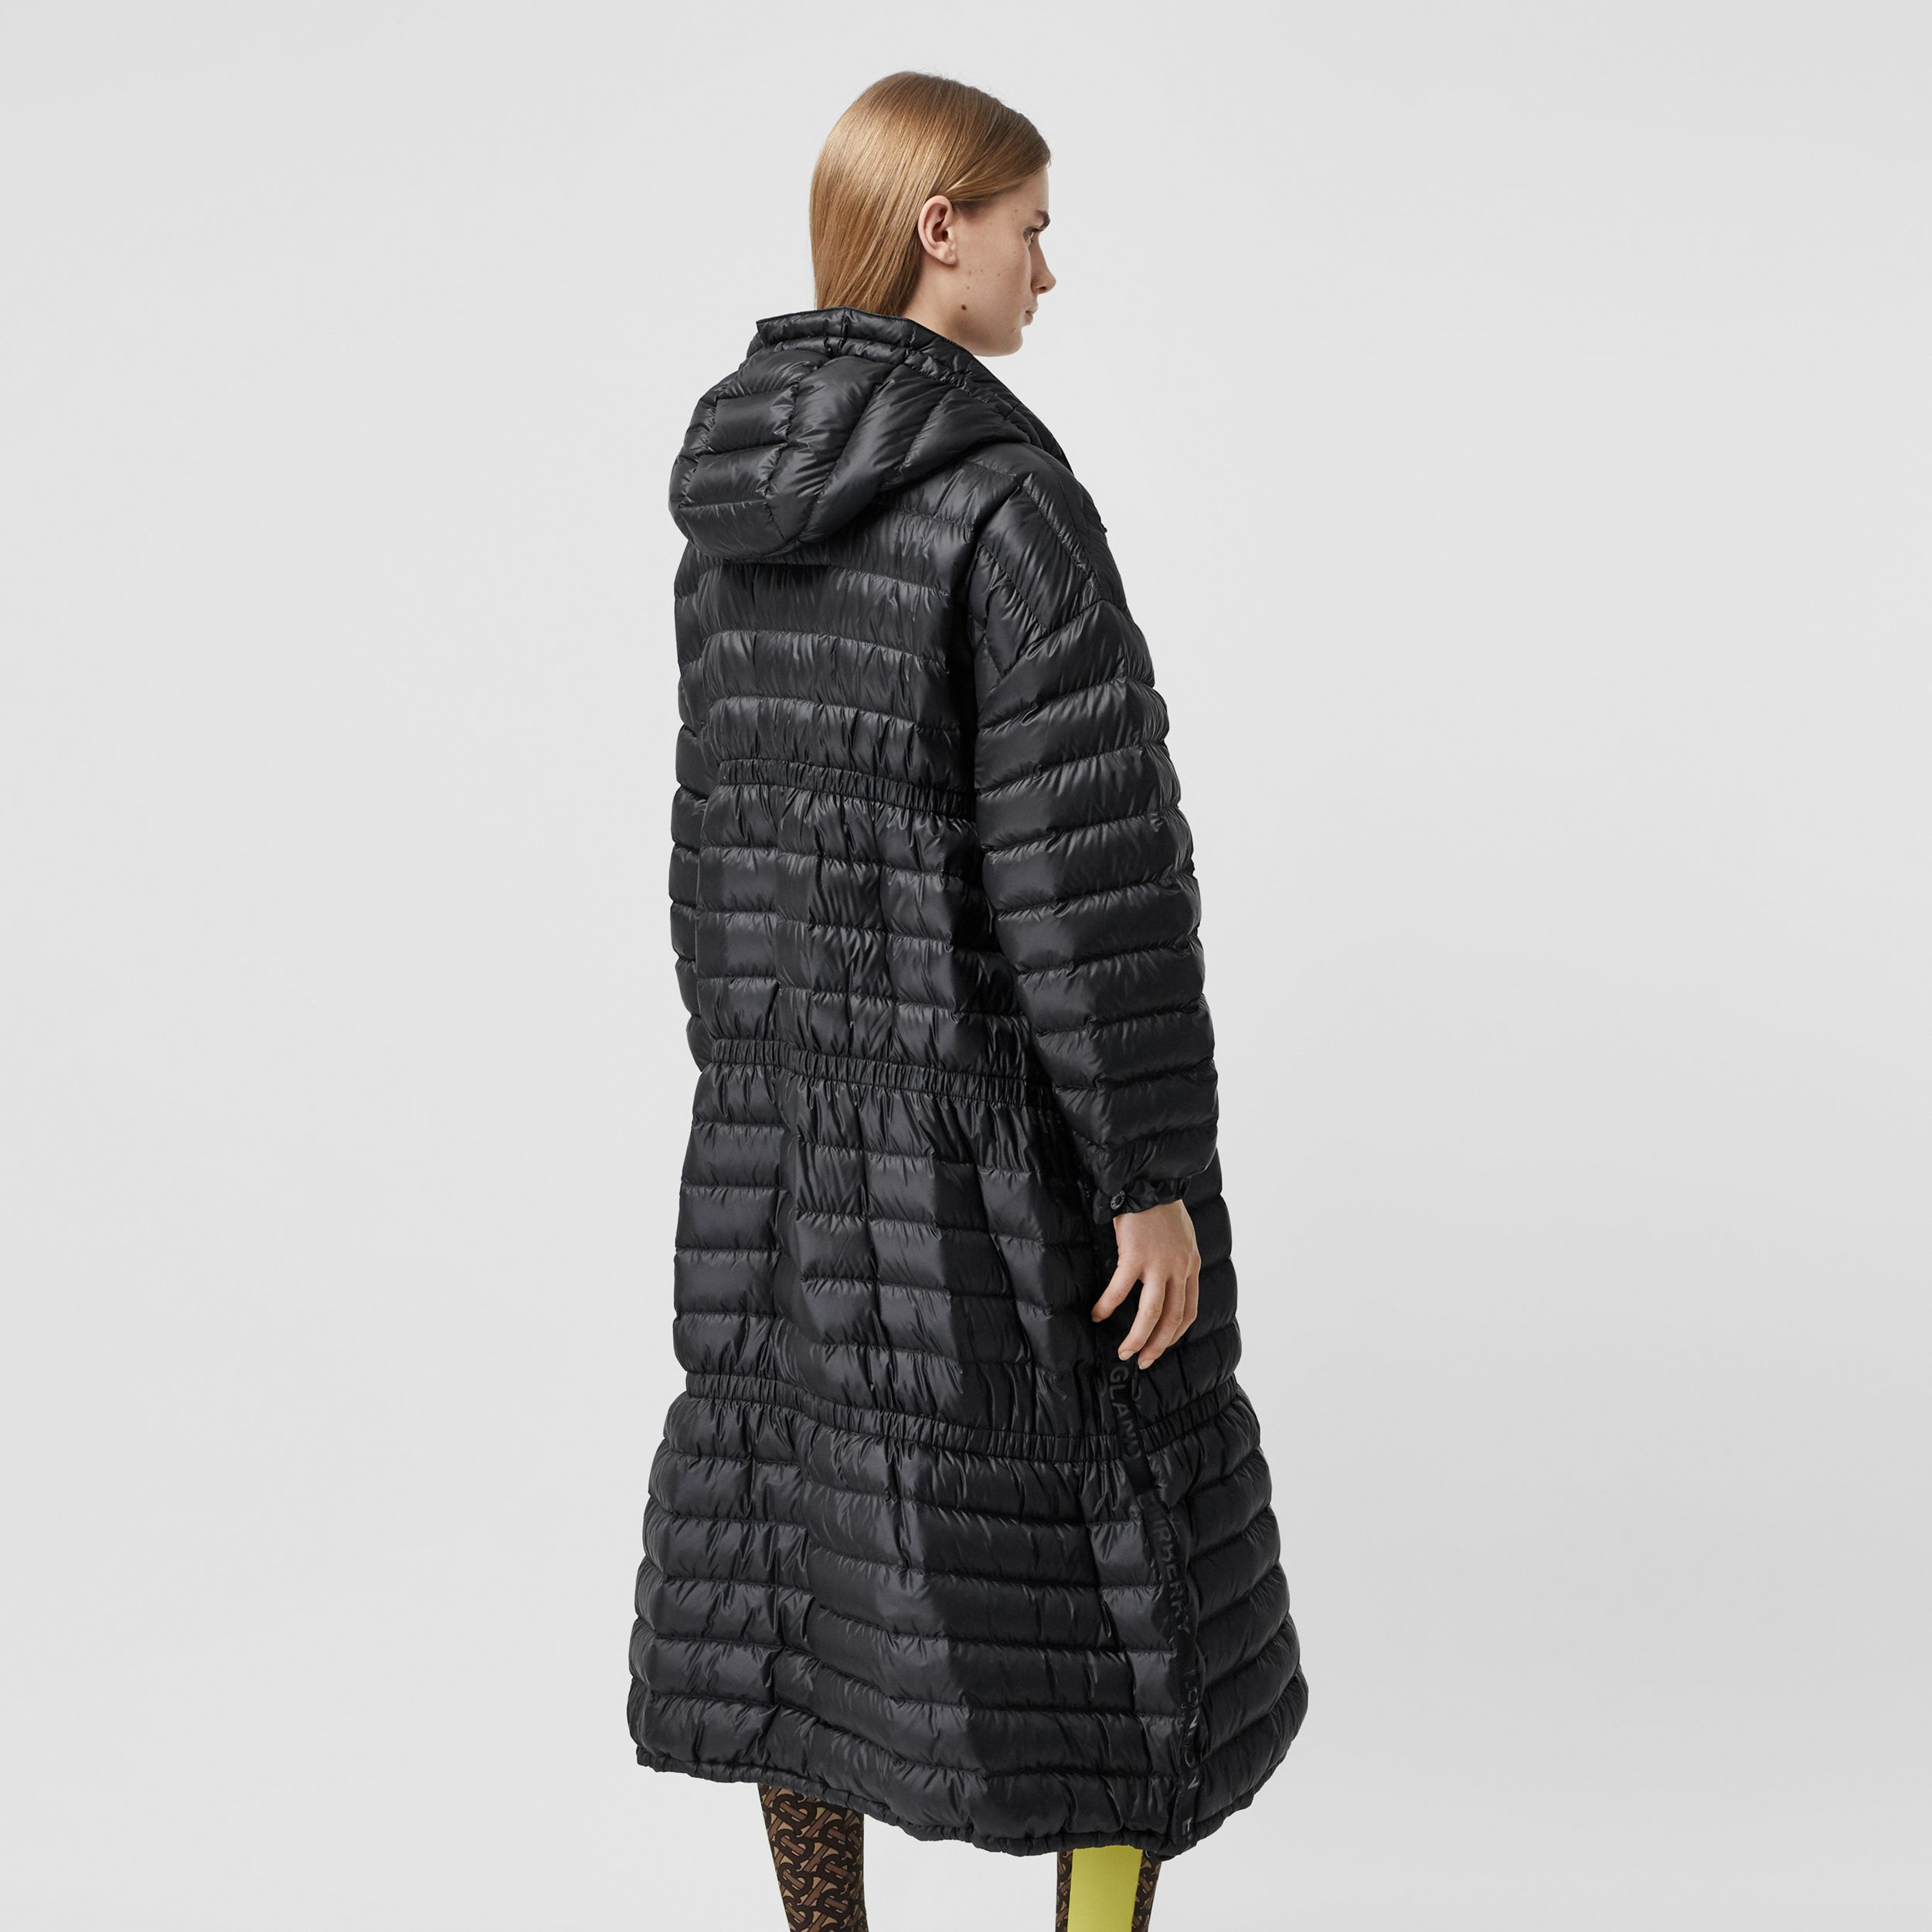 Logo Tape Lightweight Hooded Puffer Coat in Black - Women | Burberry - 3